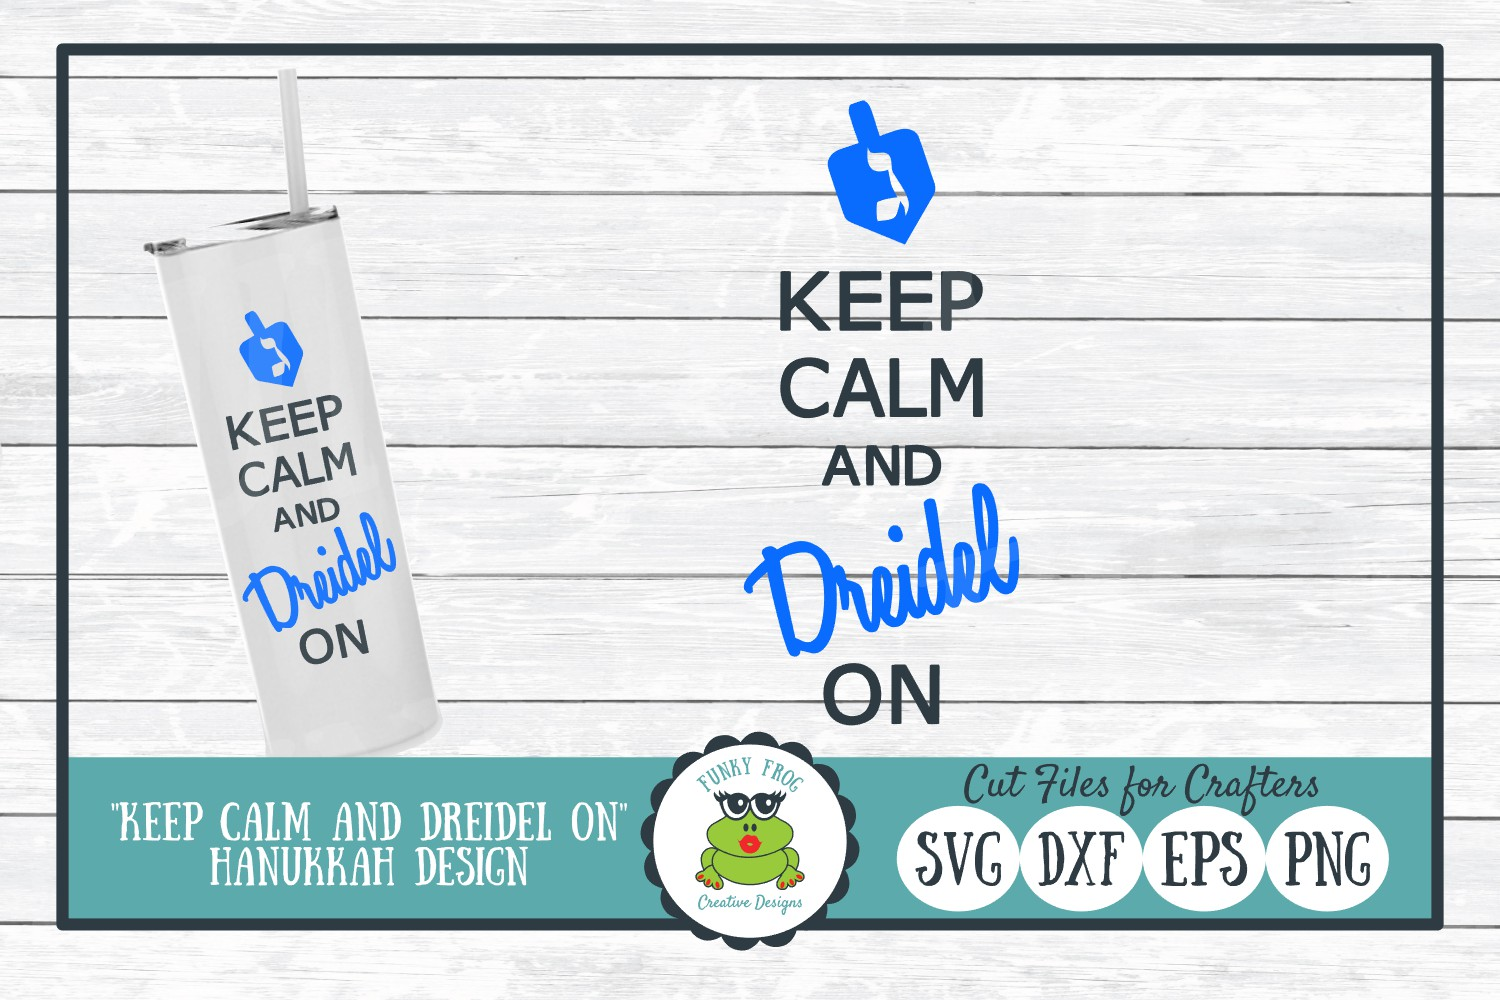 Download Free Keep Calm And Dreidel On Hanukkah Graphic By for Cricut Explore, Silhouette and other cutting machines.